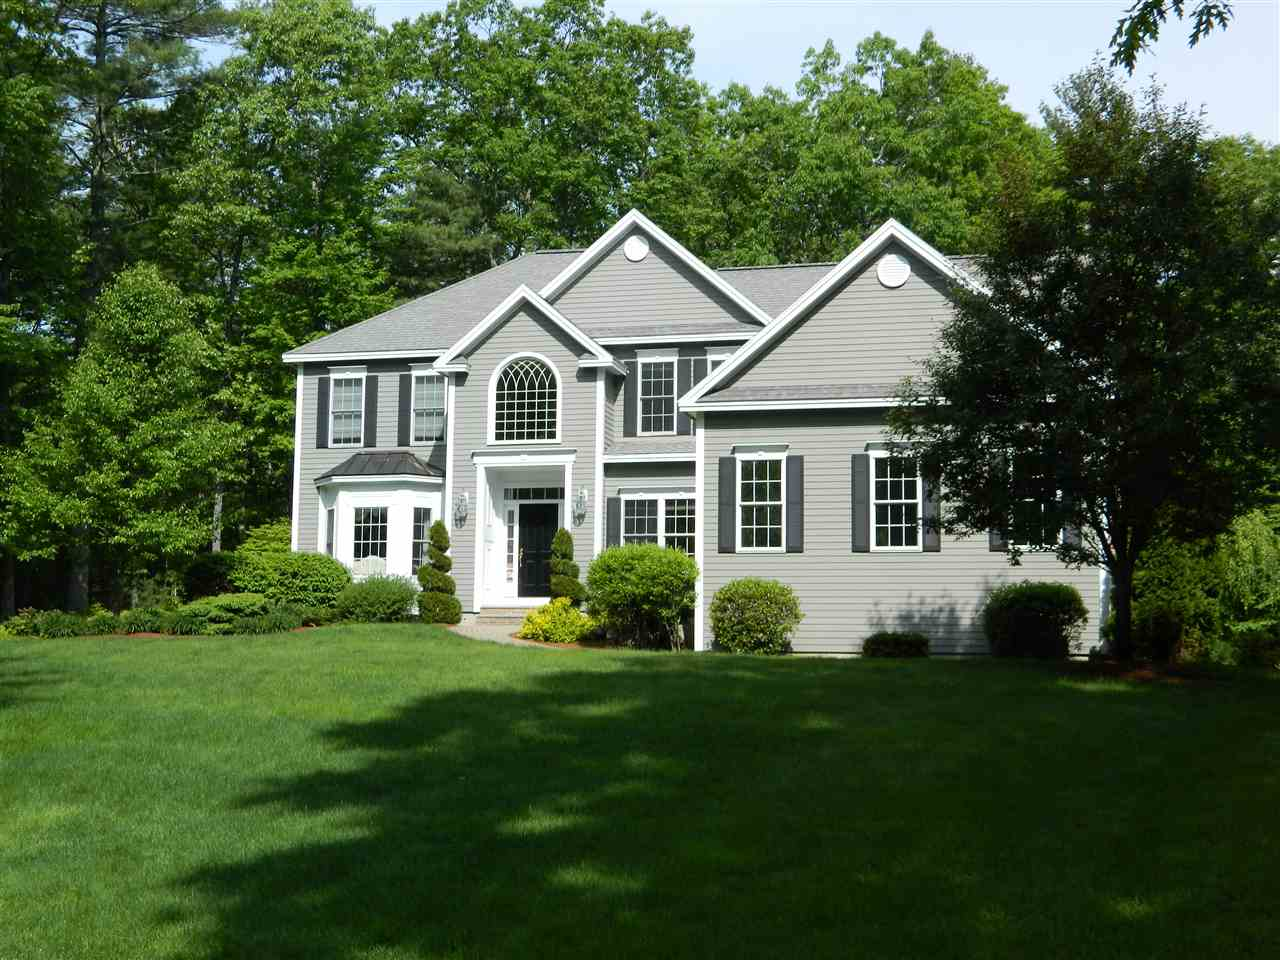 Photo of 99 Colonel Daniels Drive Bedford NH 03110